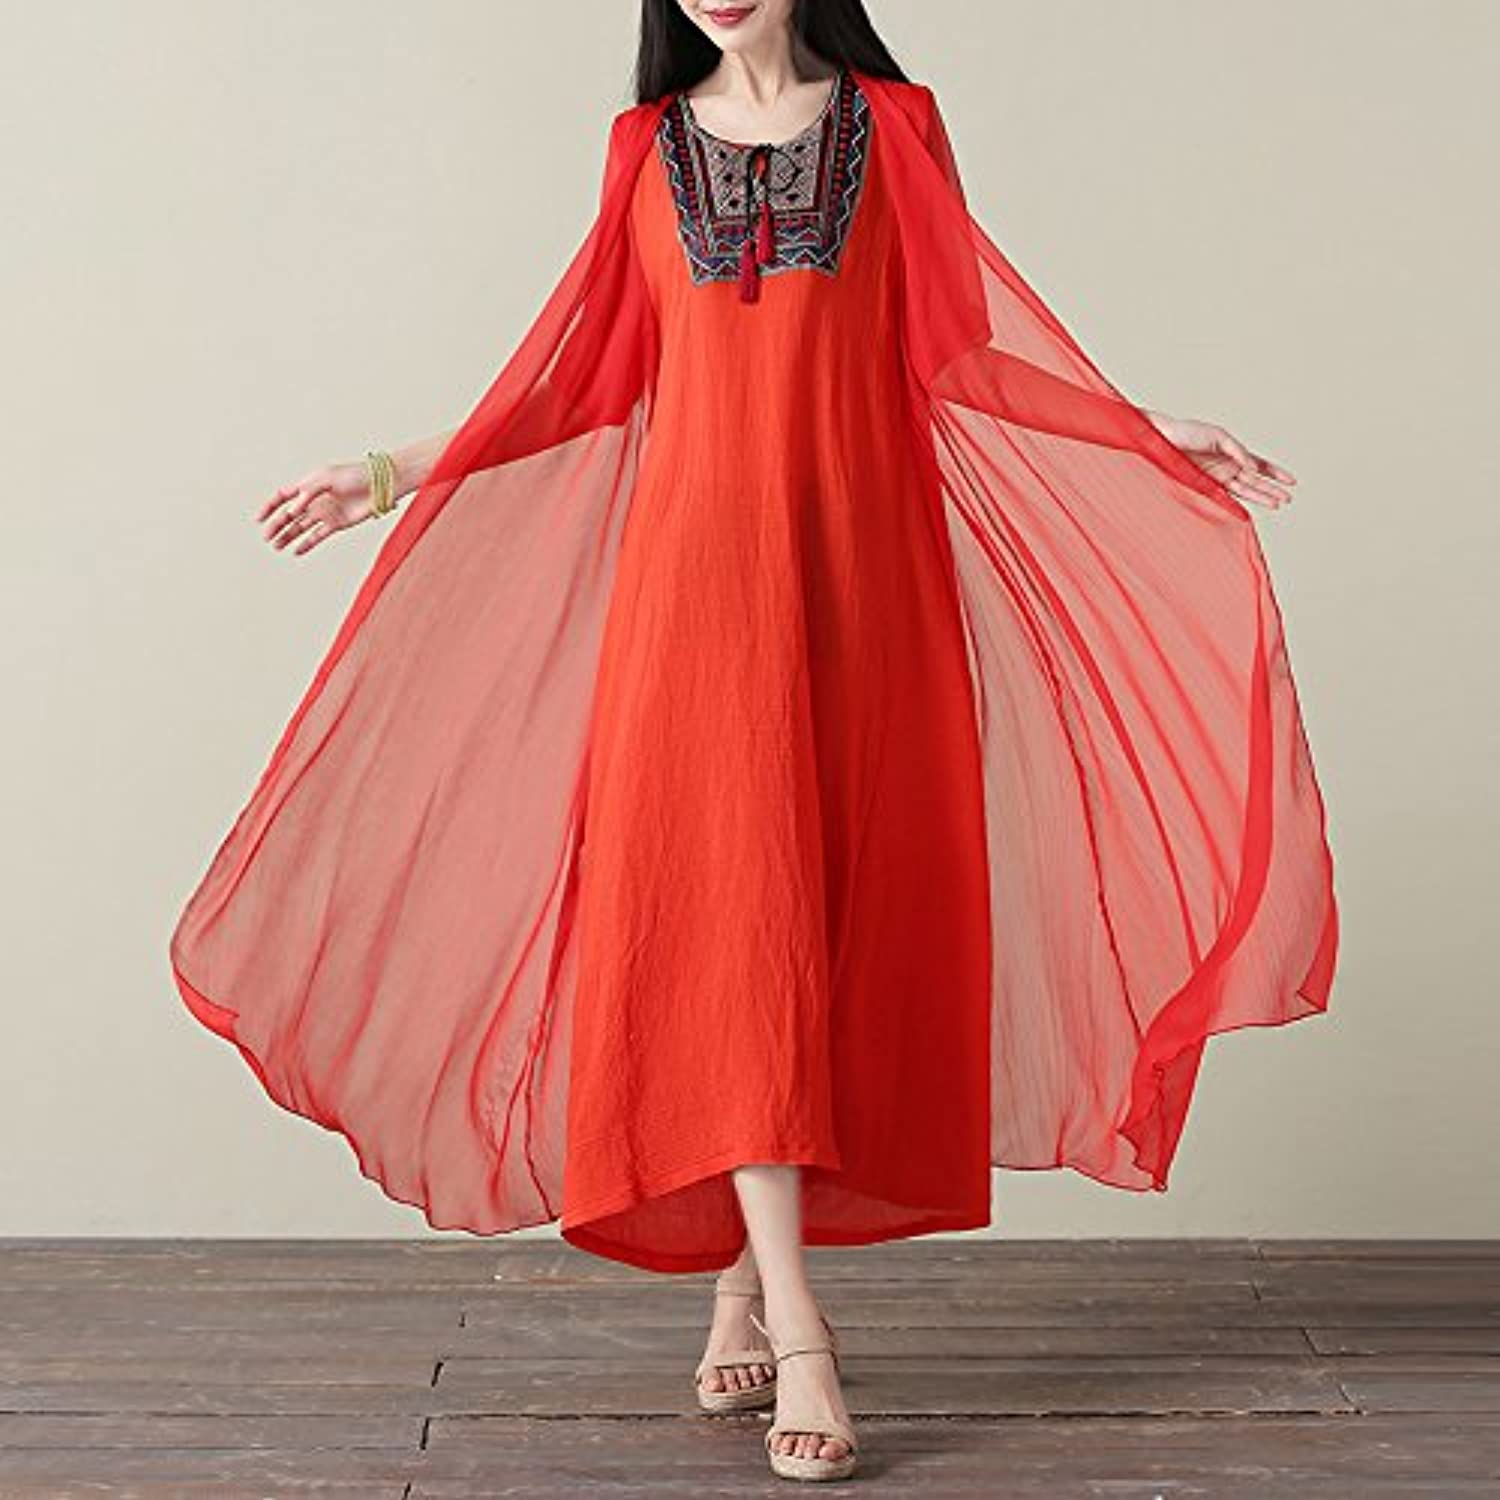 XIURONG Loose Cotton Short Sleeved Dress Embroidered Skirt